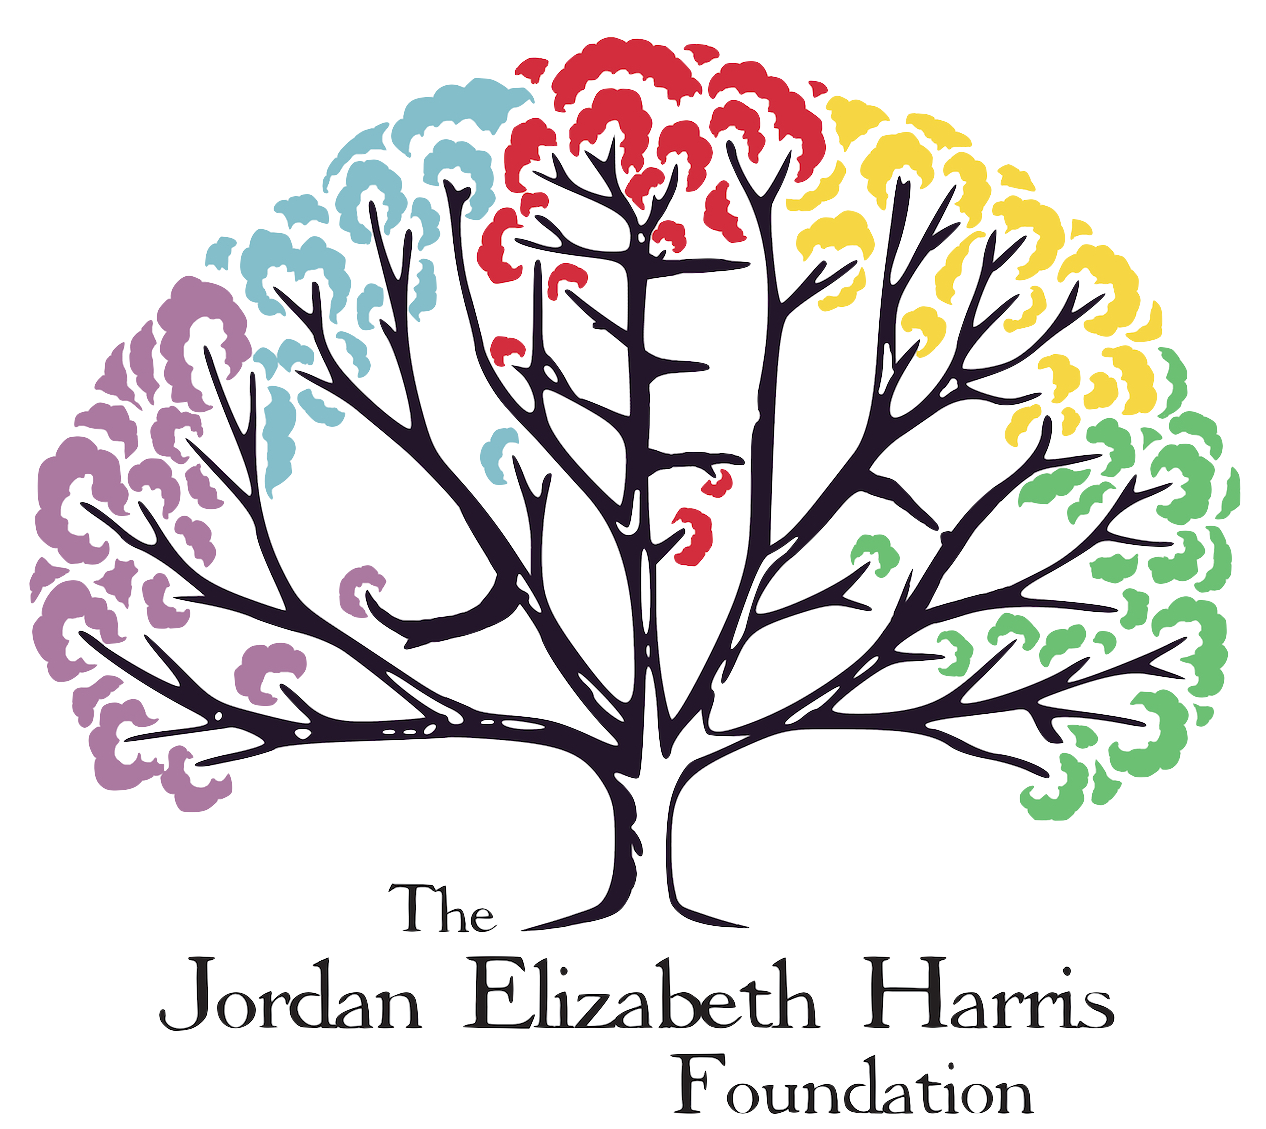 Jordan Elizabeth Harris Foundation